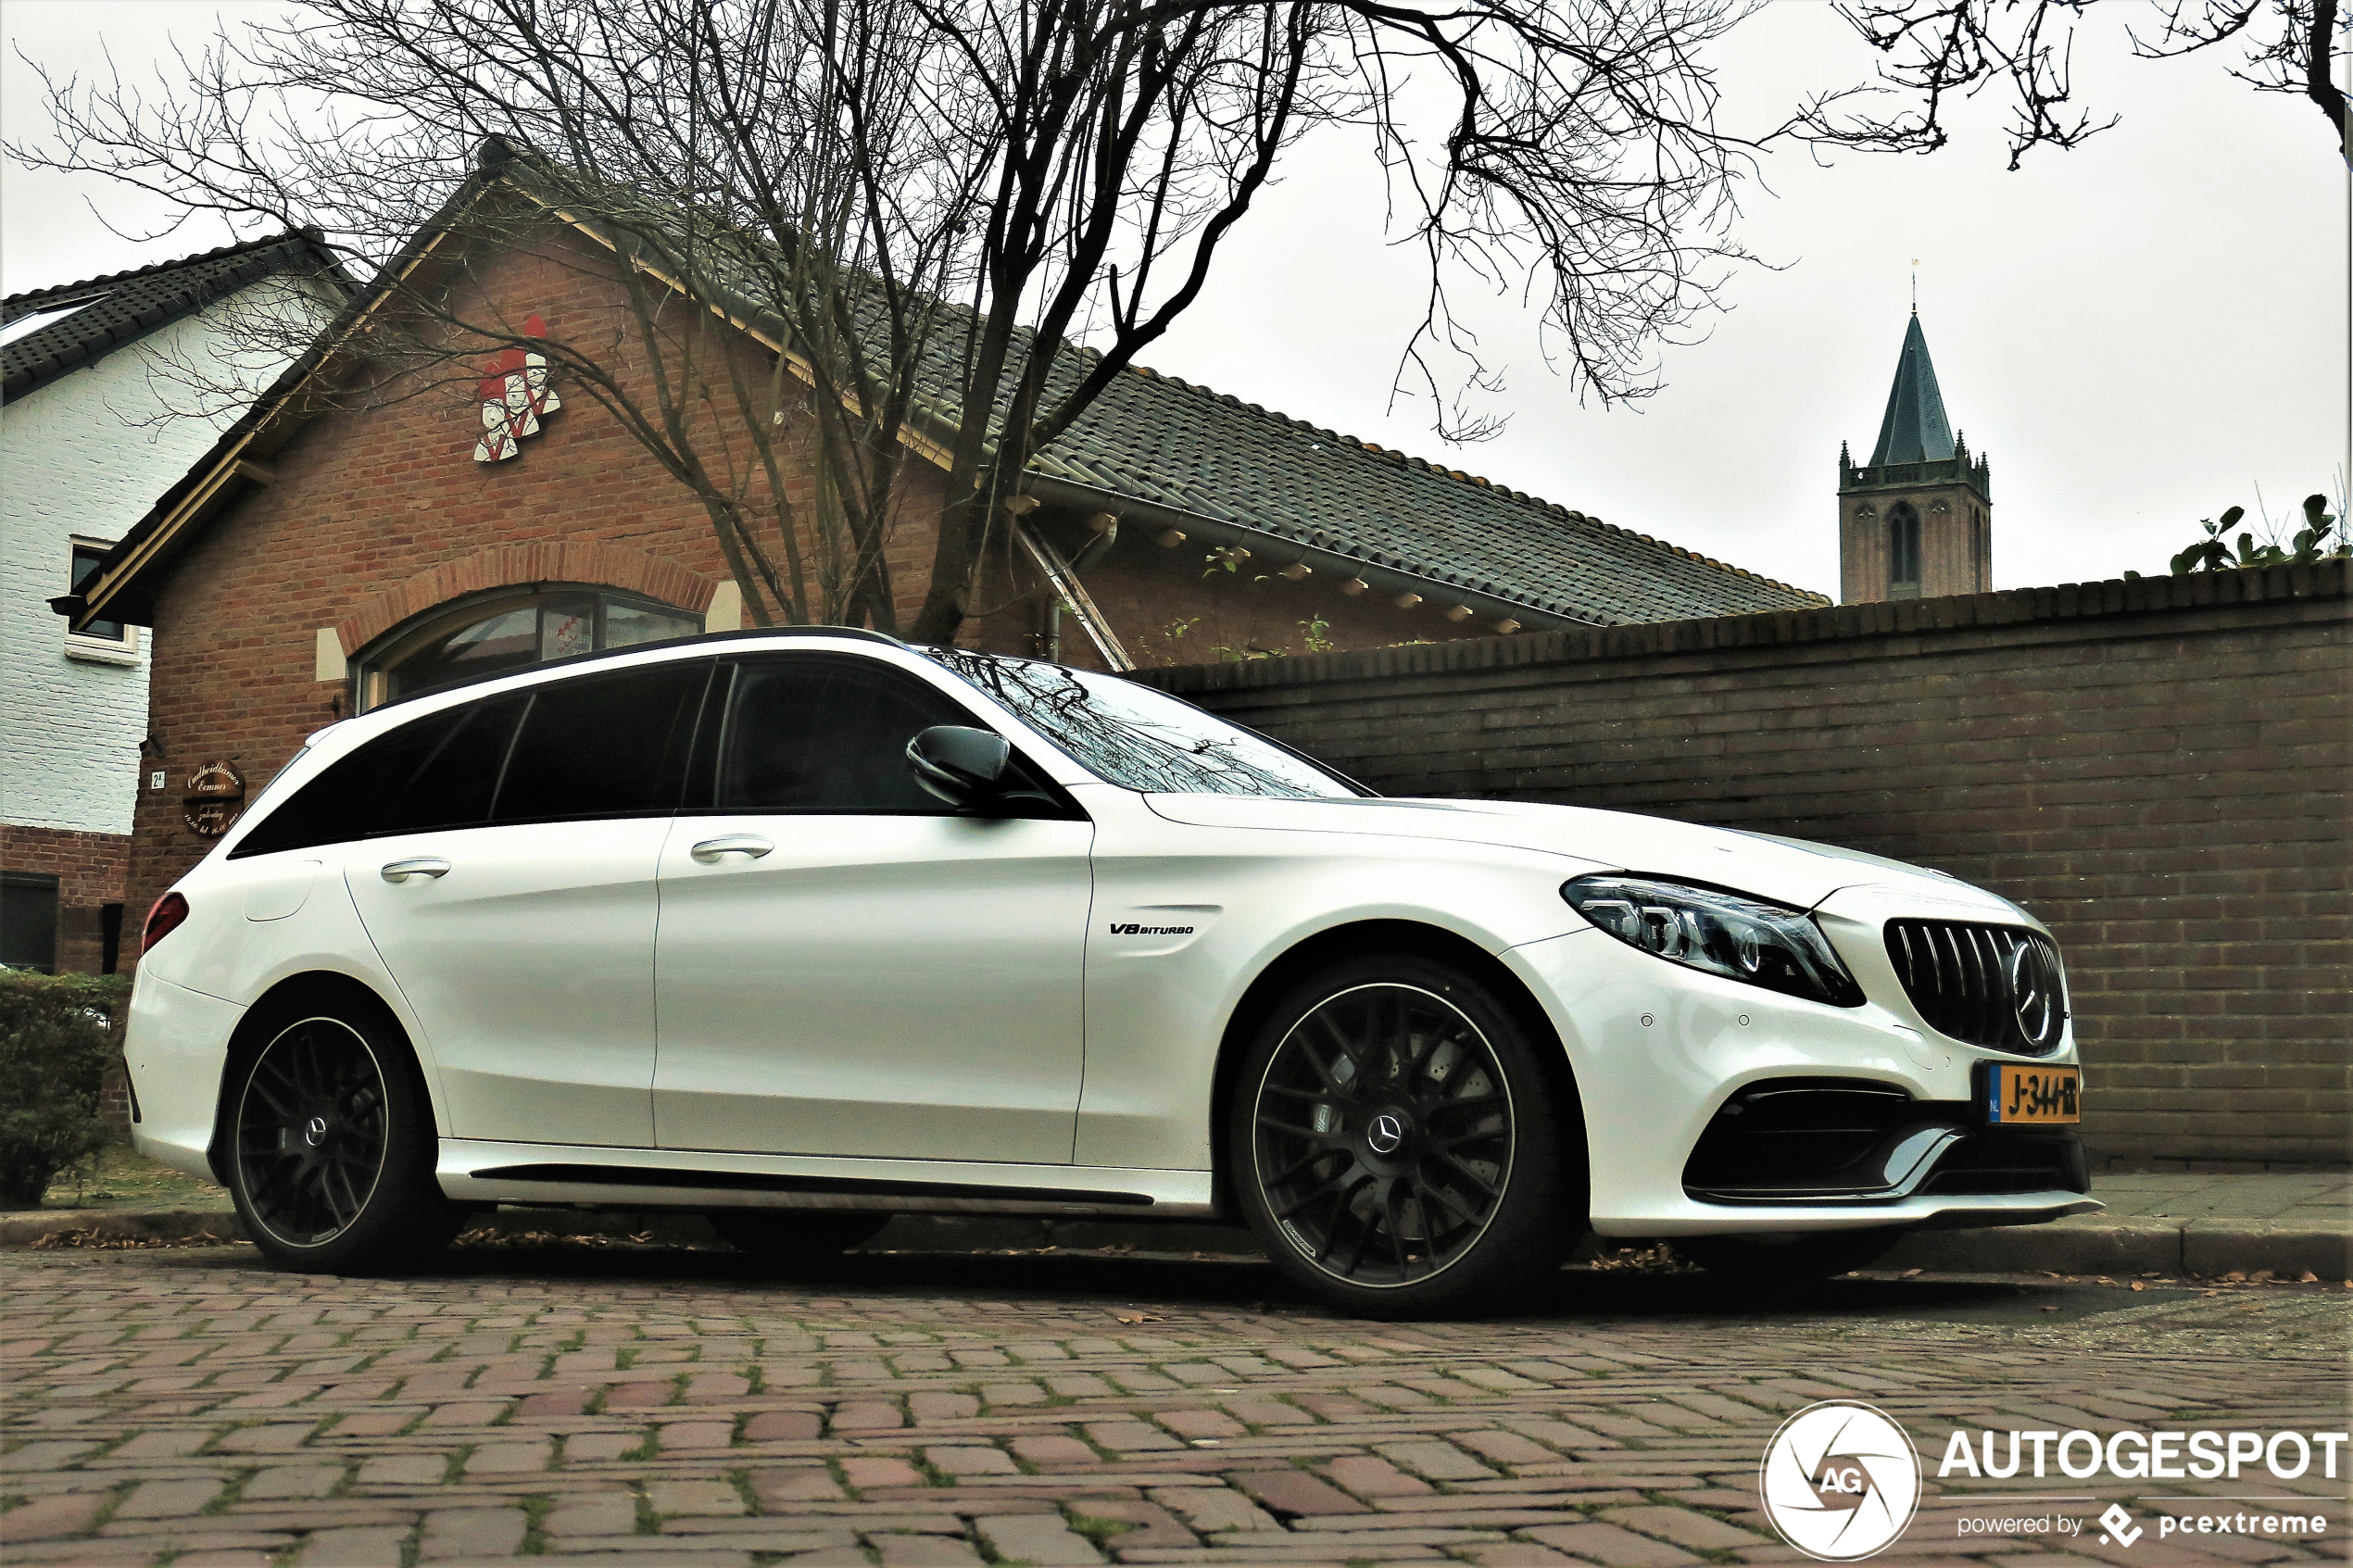 Mercedes-AMG C 63 Estate S205 2018